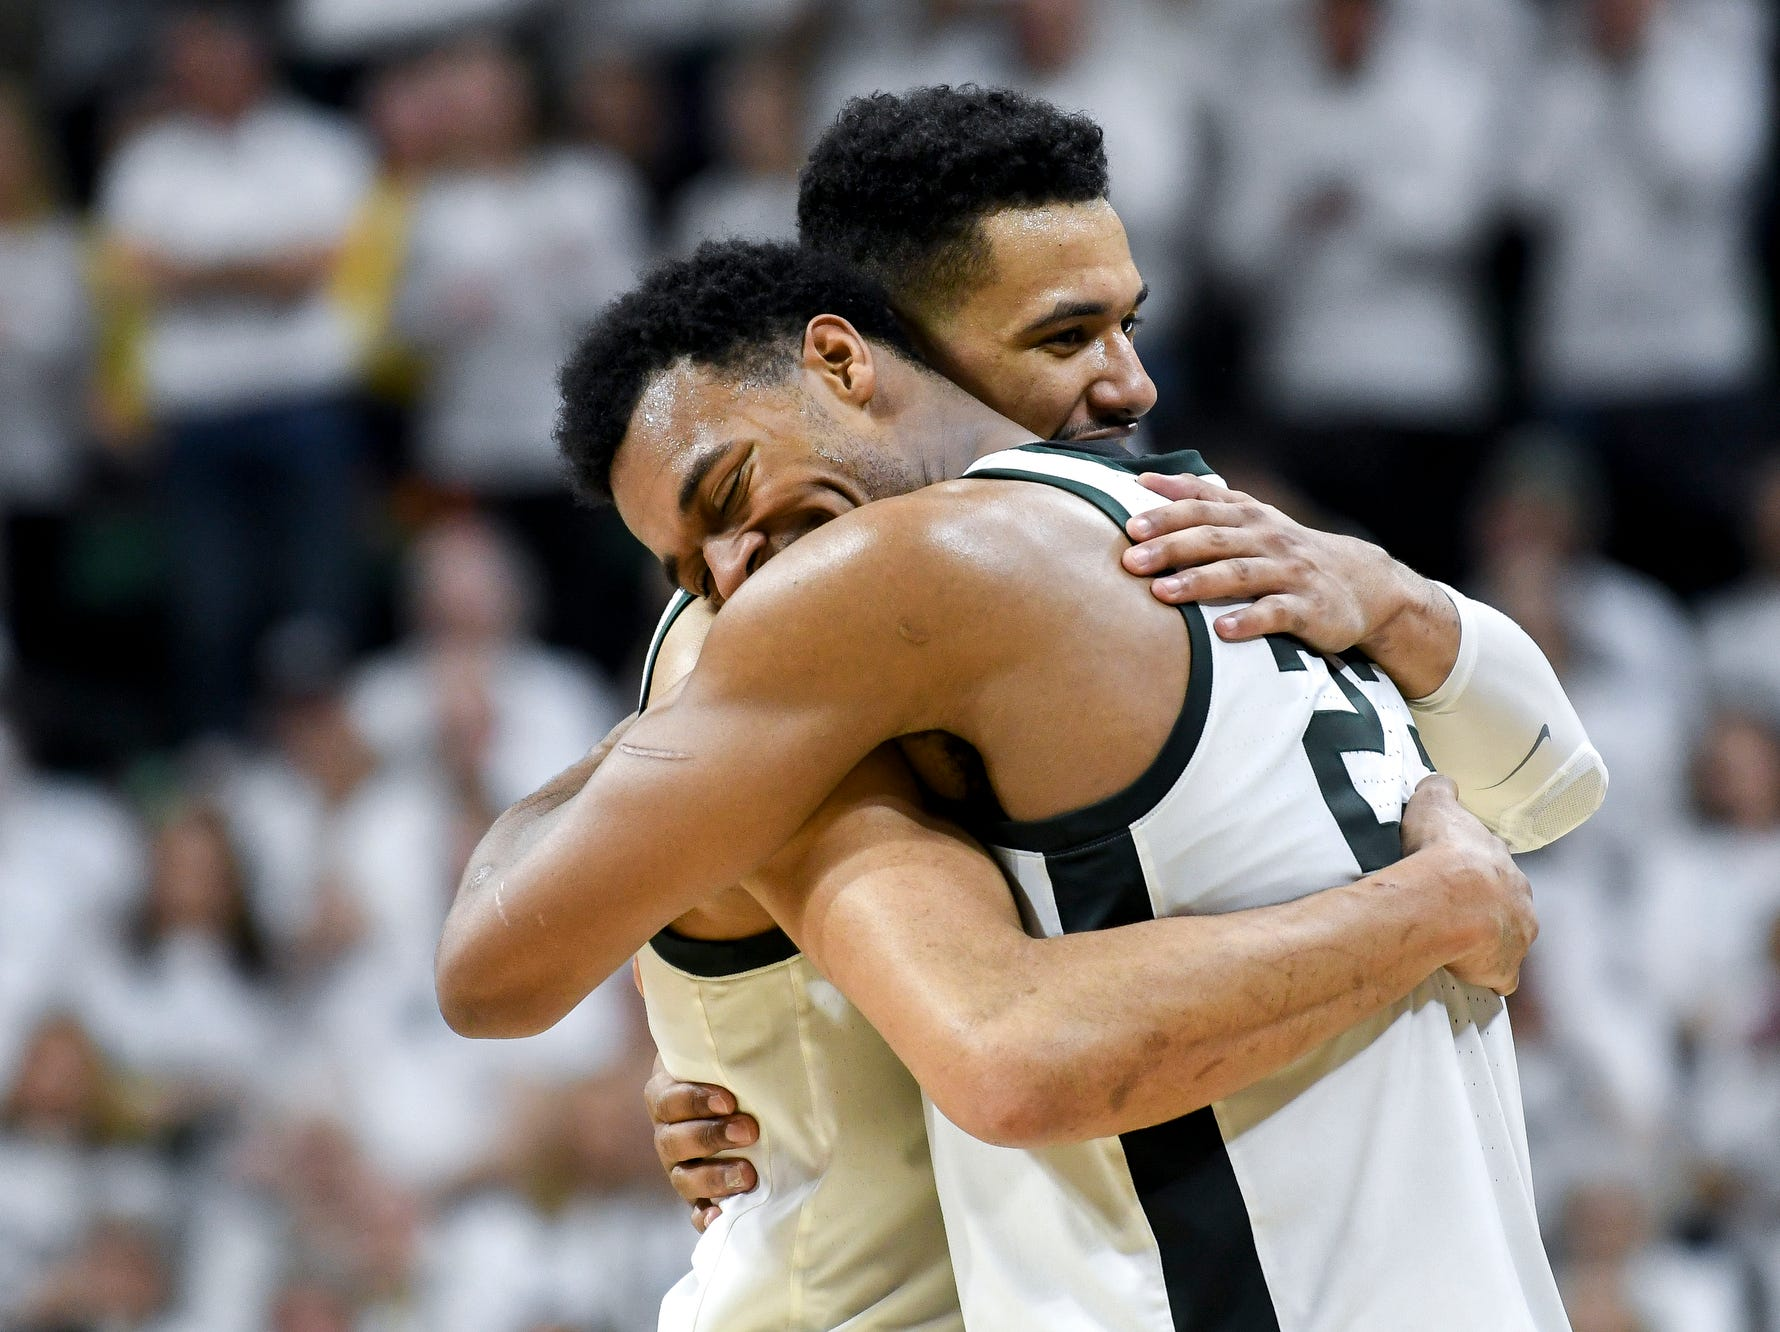 Michigan State's Xavier Tillman, right, hugs Kenny Goins during the second half on Saturday, March 9, 2019, at the Breslin Center in East Lansing.